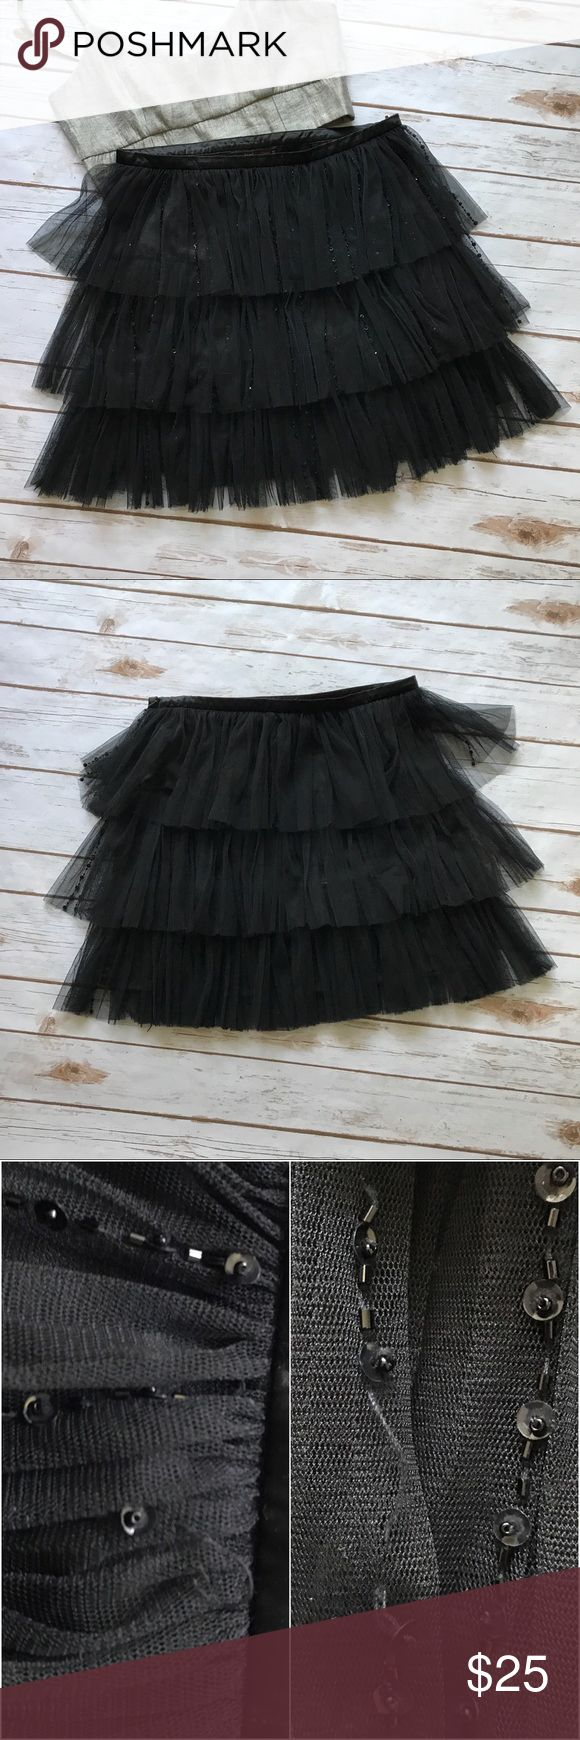 Hazel Sequin Layered Skirt Gently loved skirt. 100% polyester. Dry clean only. Sequins are only in front. Side zipper. Few sequins missing here and there and there are 2 holes in mash. Noting really noticeable. hazel Skirts Mini